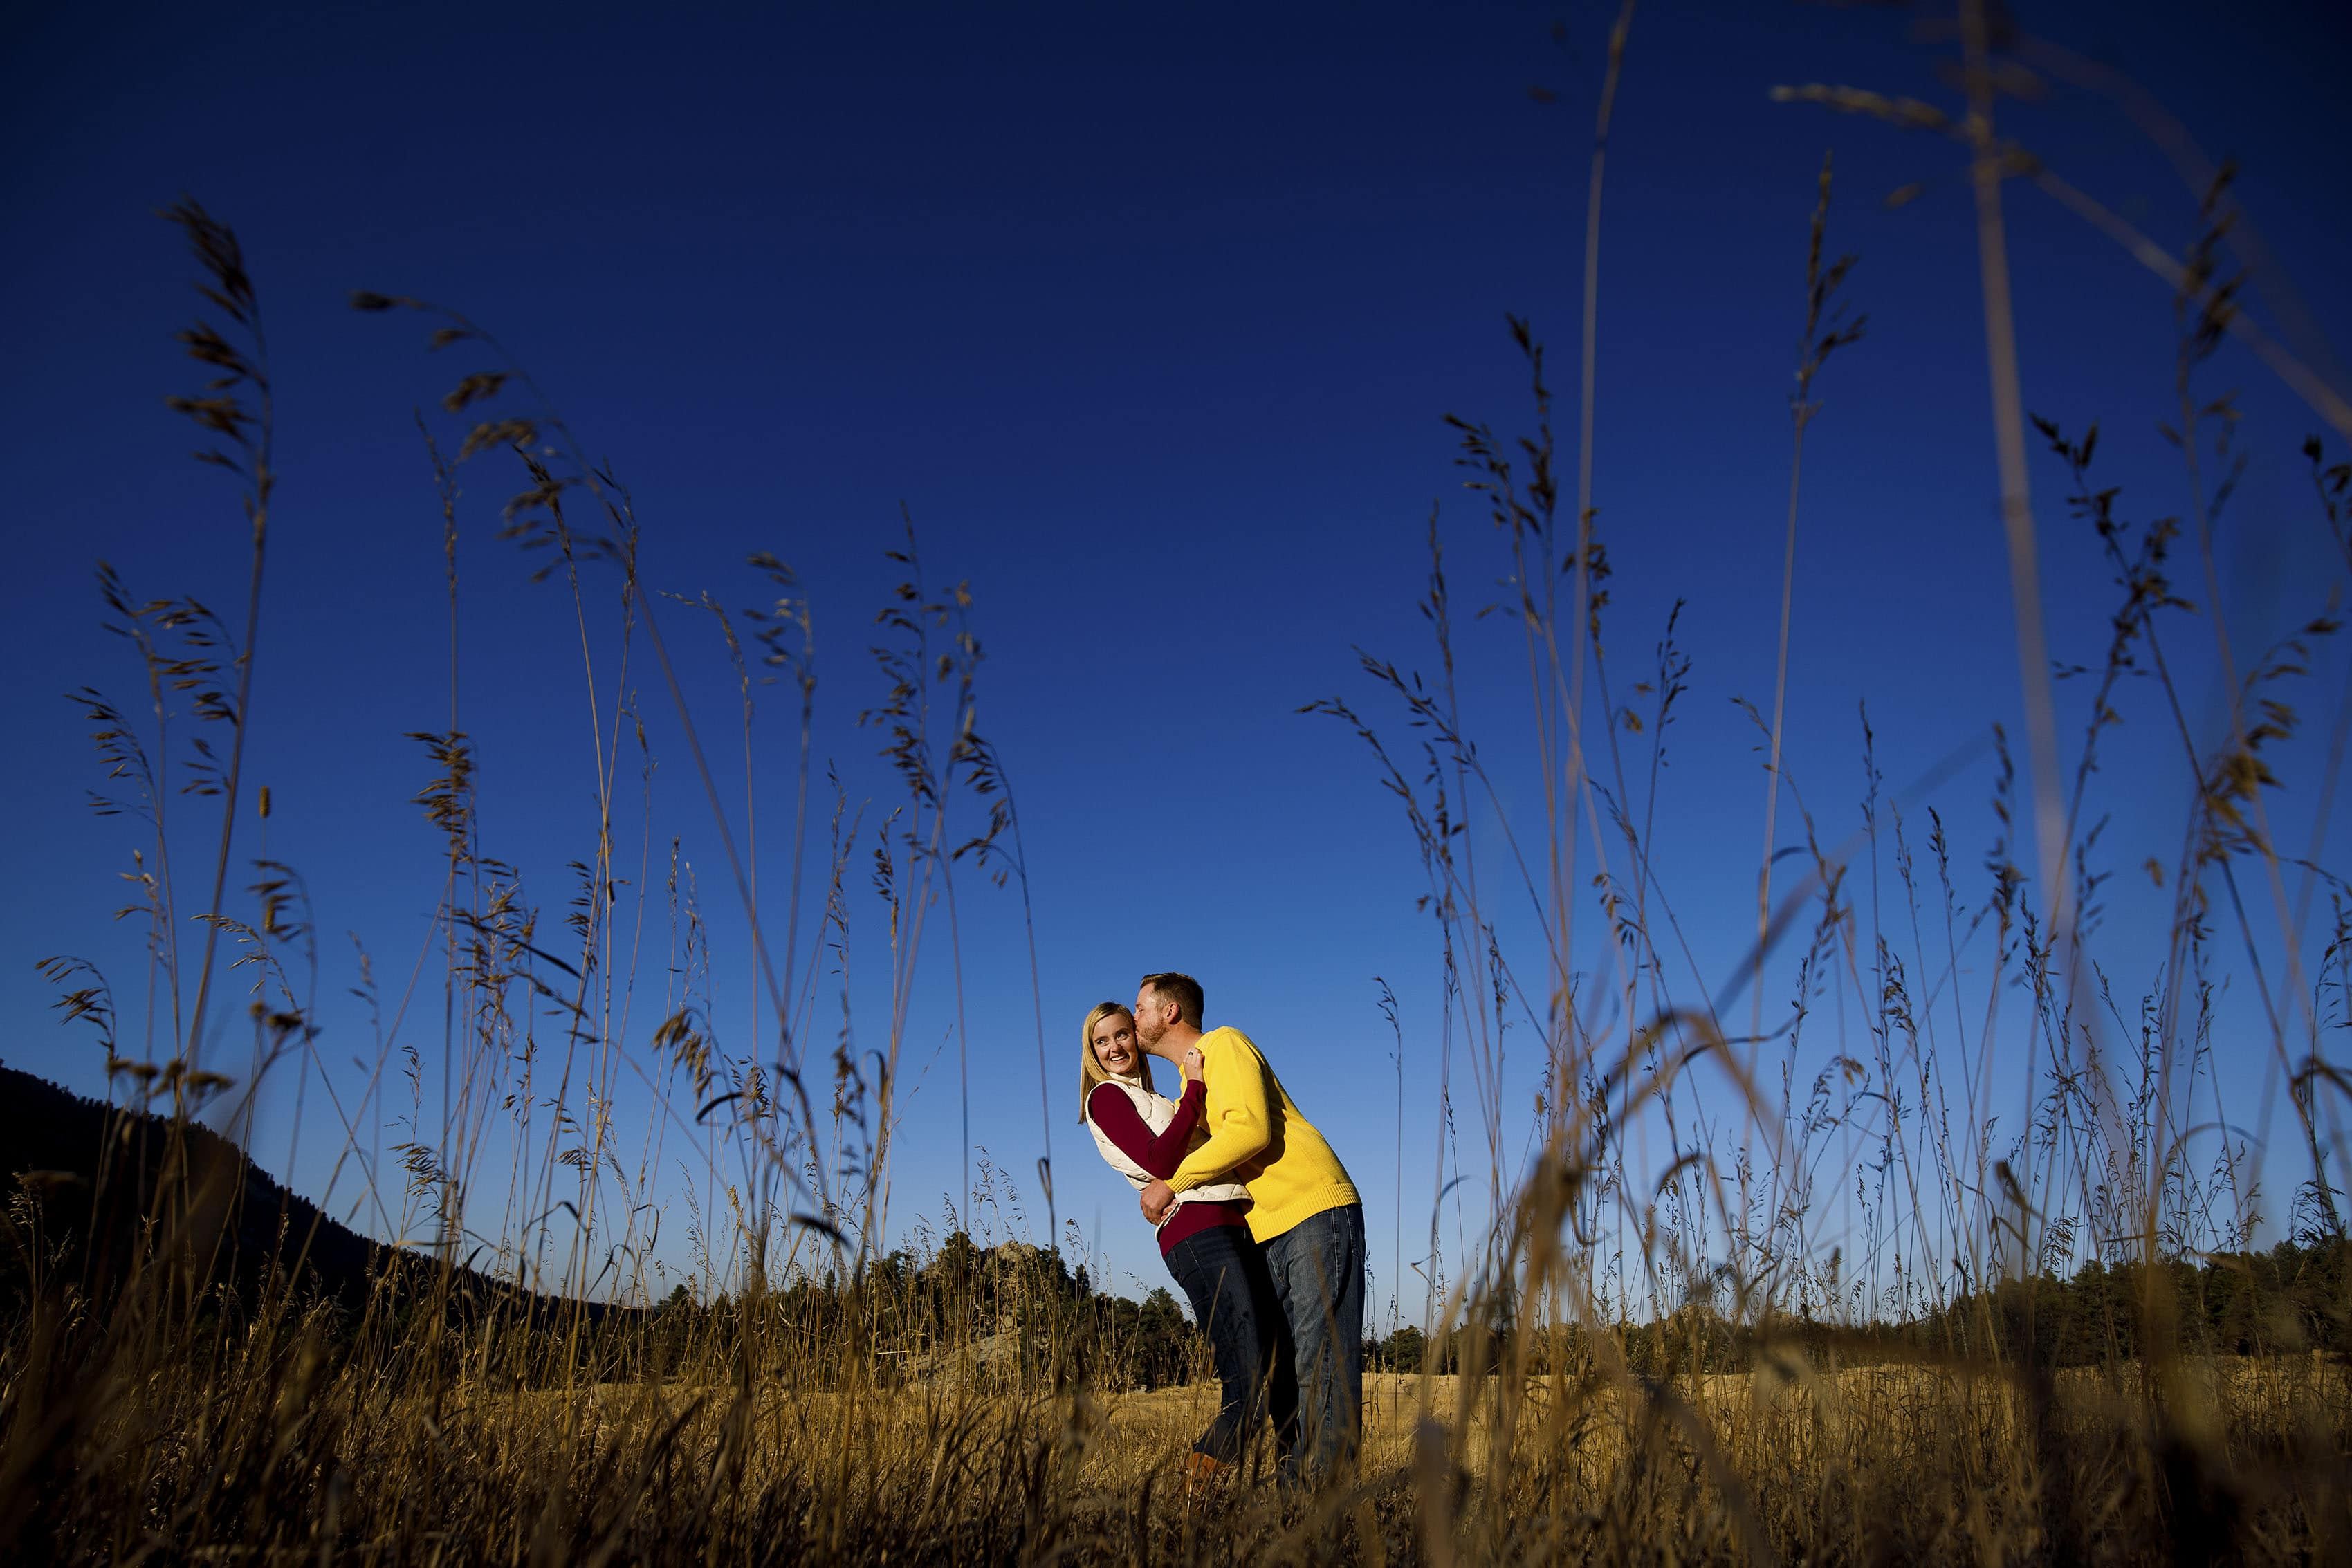 Stefan kisses Jennifer in the long grass during their fall engagement photos at Alderfer Three Sisters